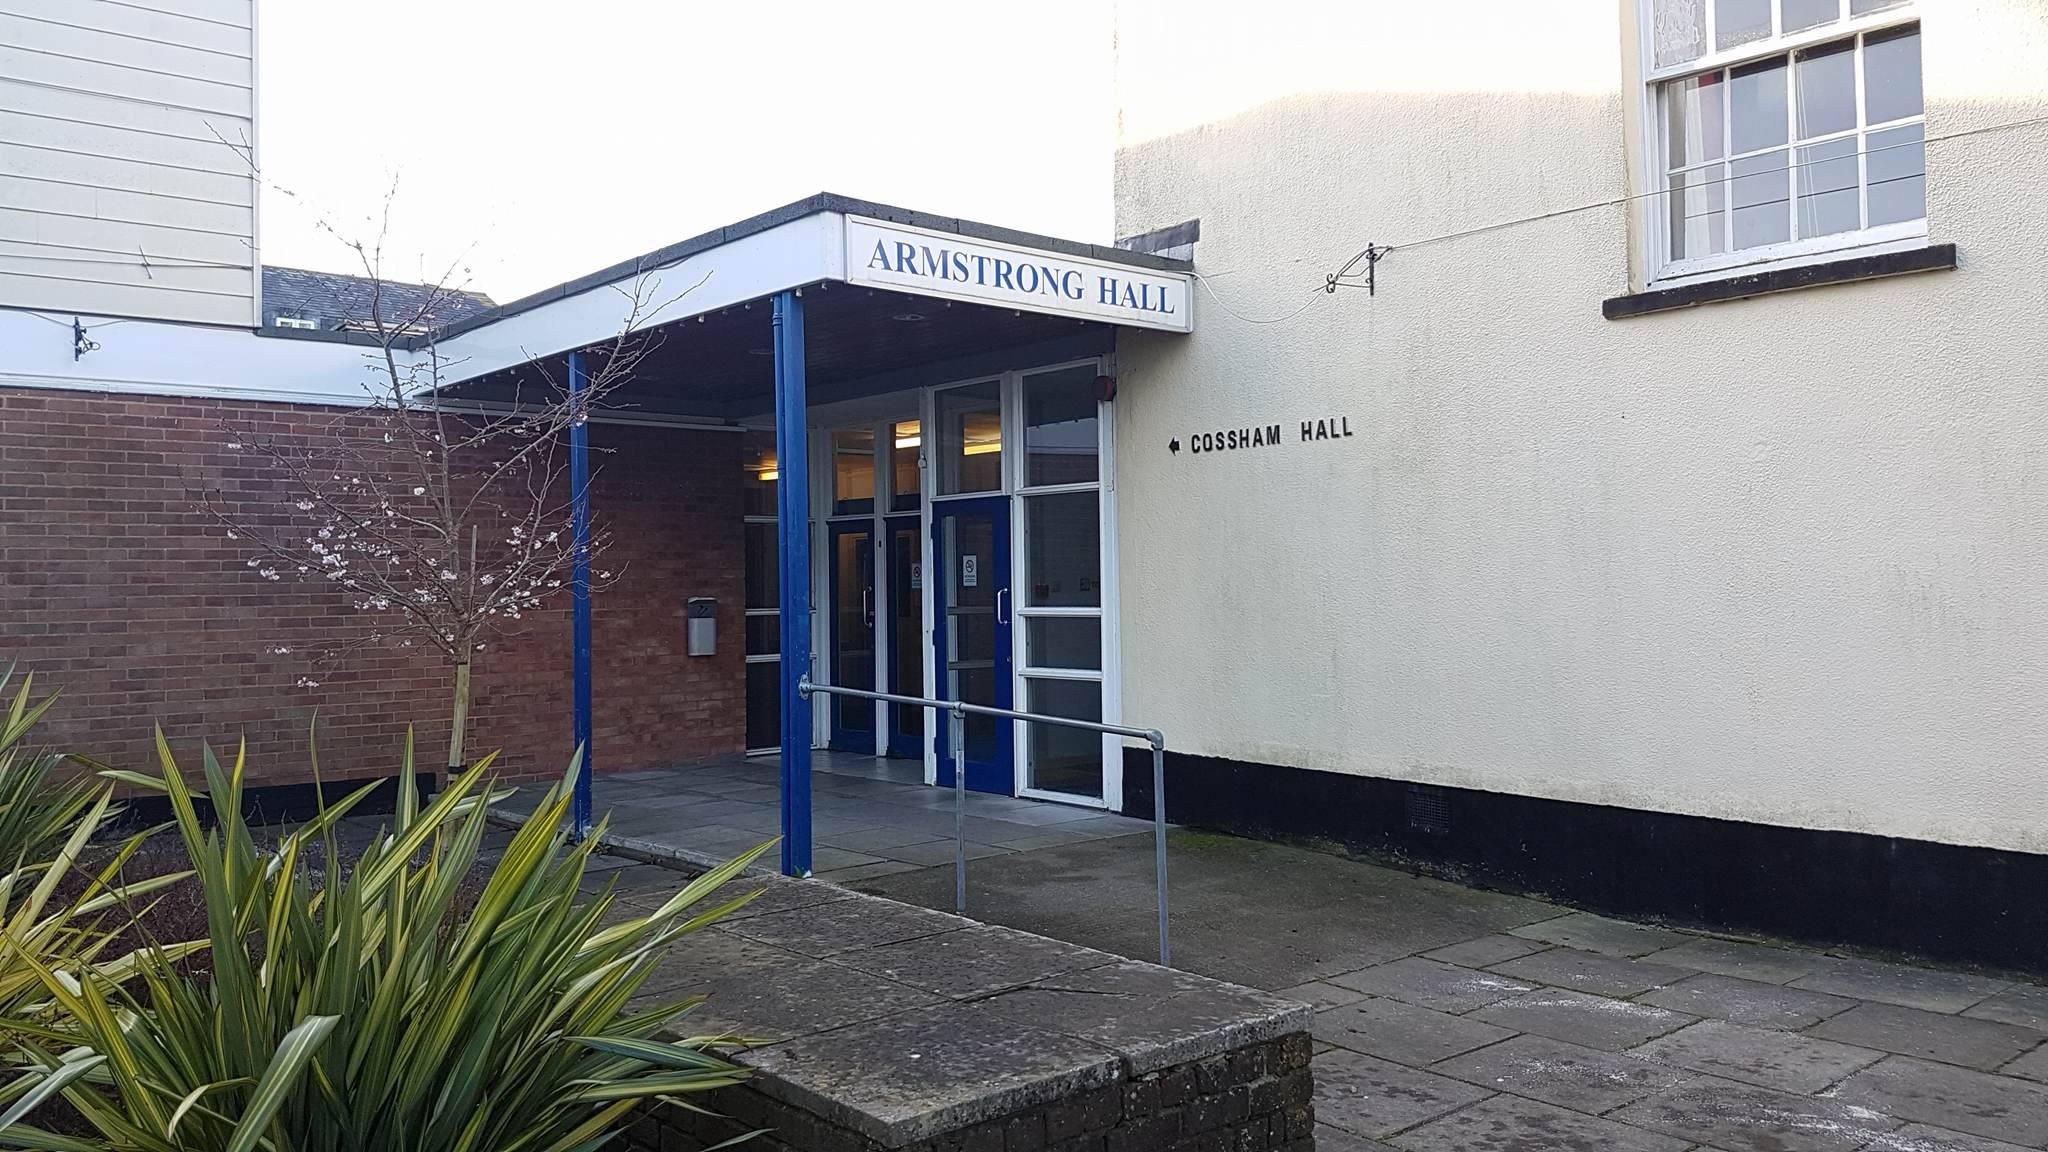 Date set for town meeting to discuss future of Armstrong Hall in Thornbury